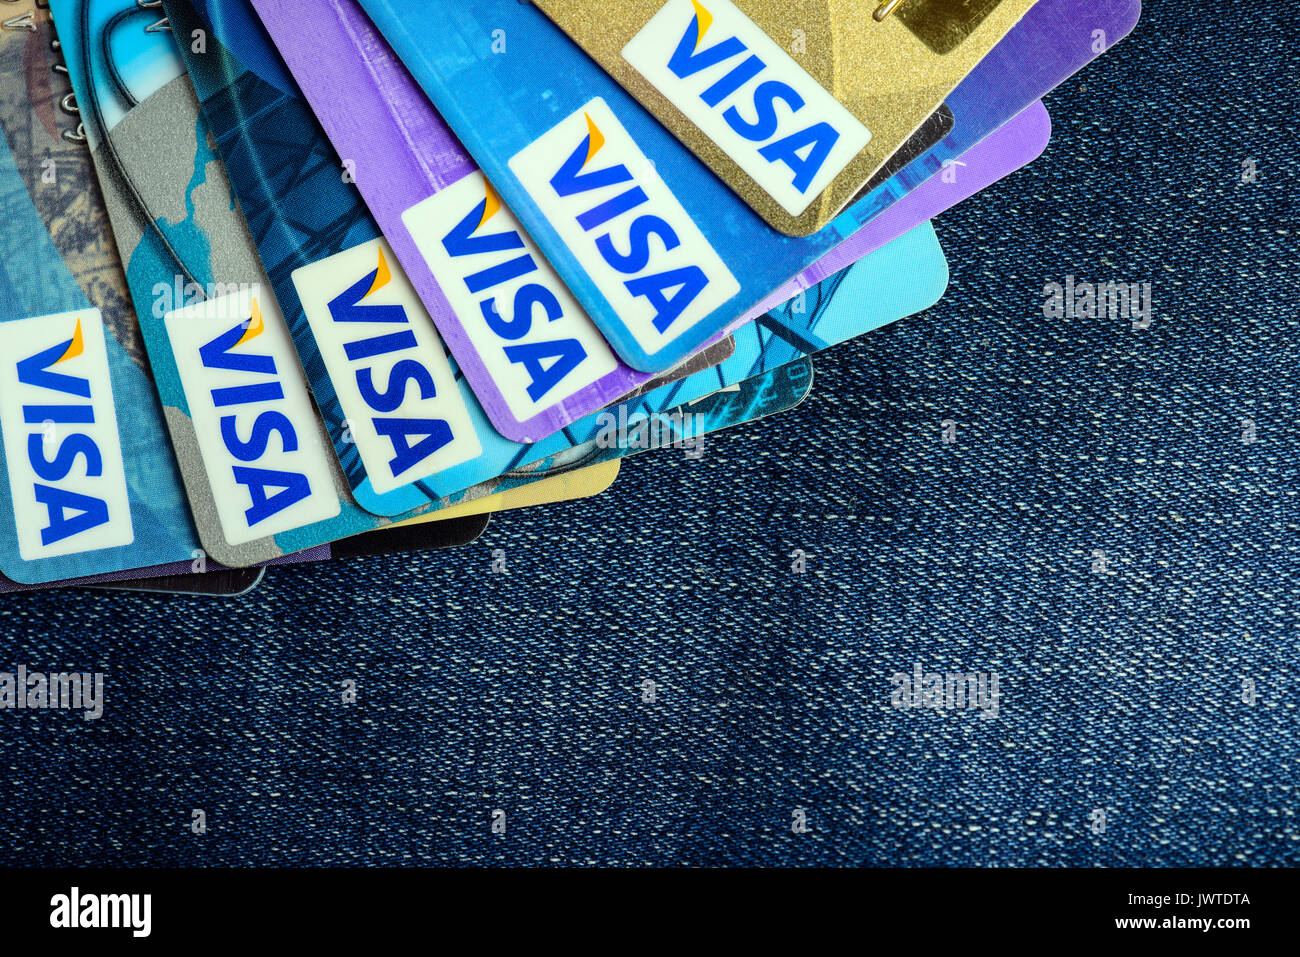 Moscowi, Russia - August 05, 2017: Visa credit cards over blue jeans - Stock Image